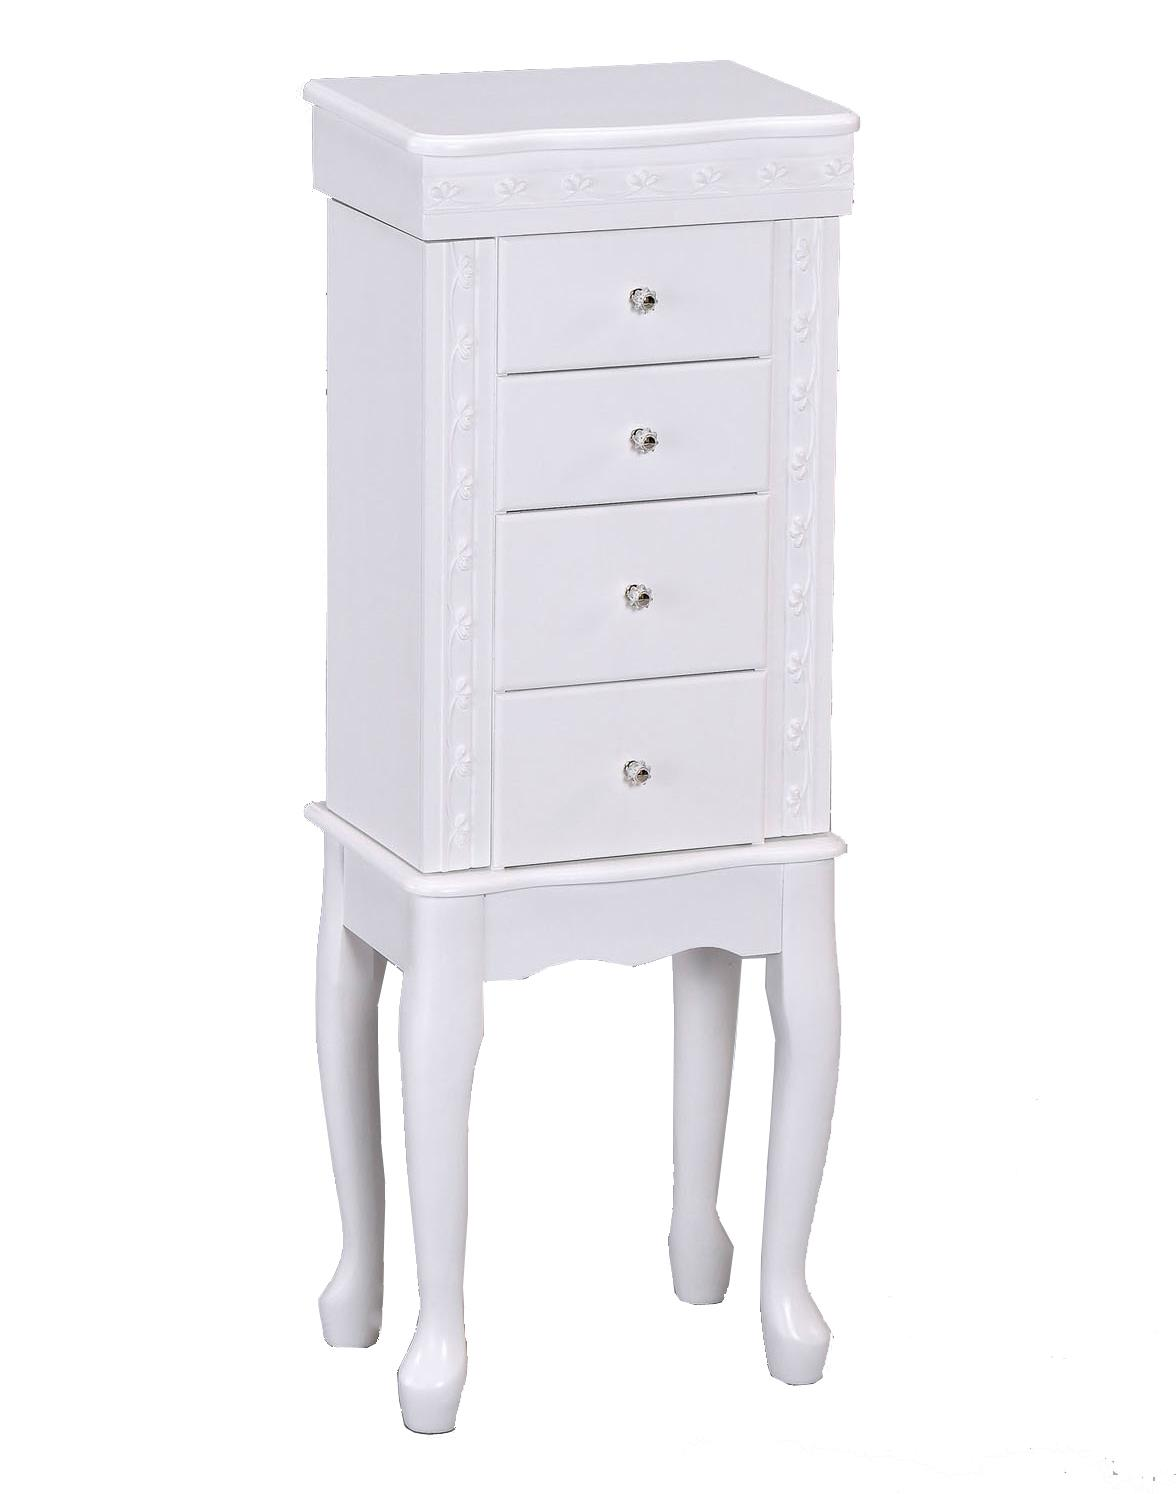 Acme Furniture Didi White Jewelry Armoire - Item Number: 97004